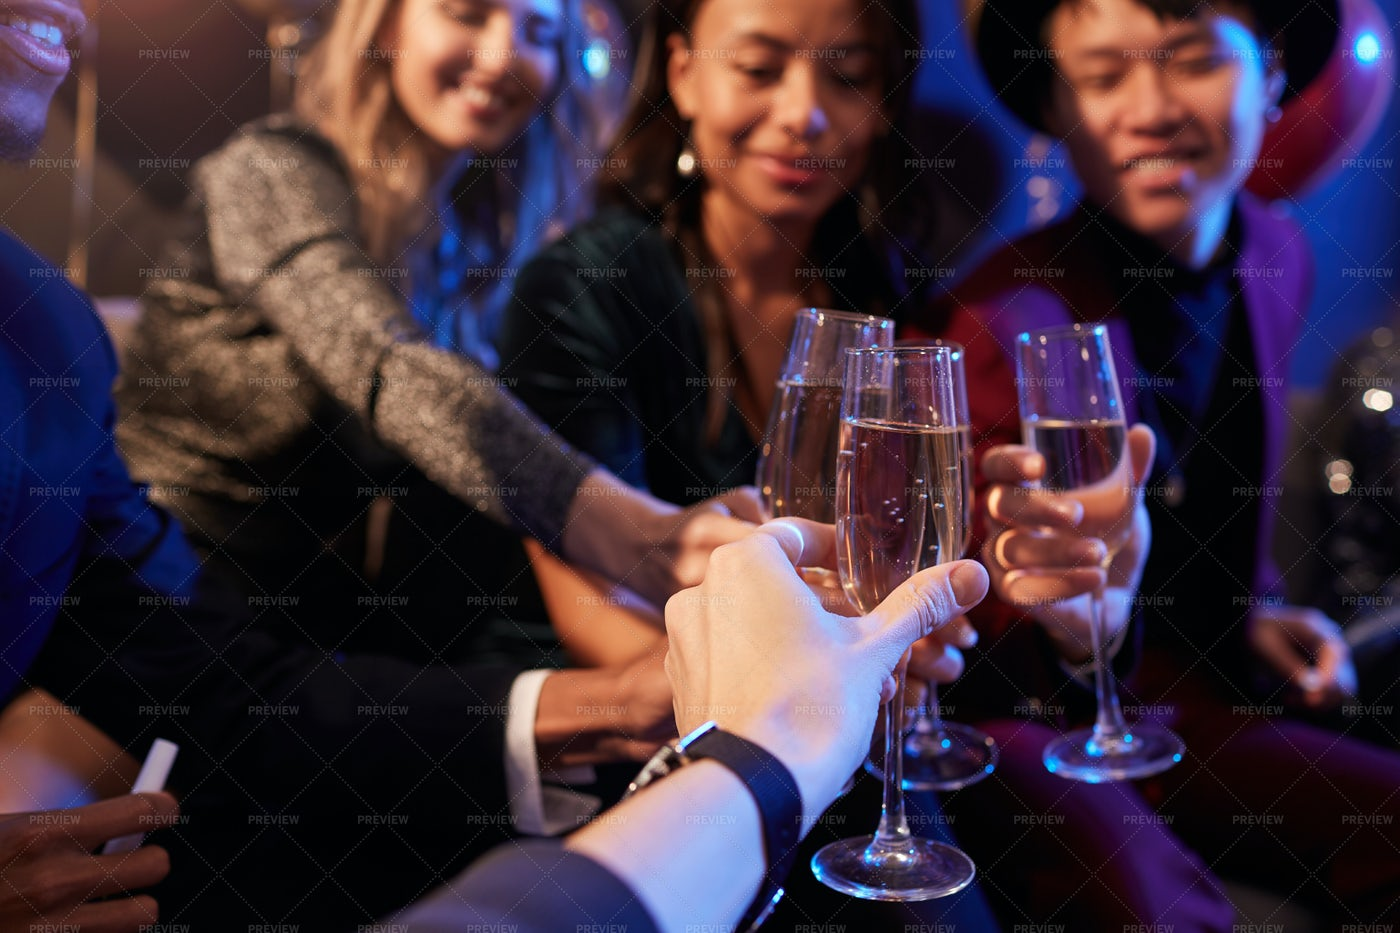 Friends Drinking Champagne At...: Stock Photos